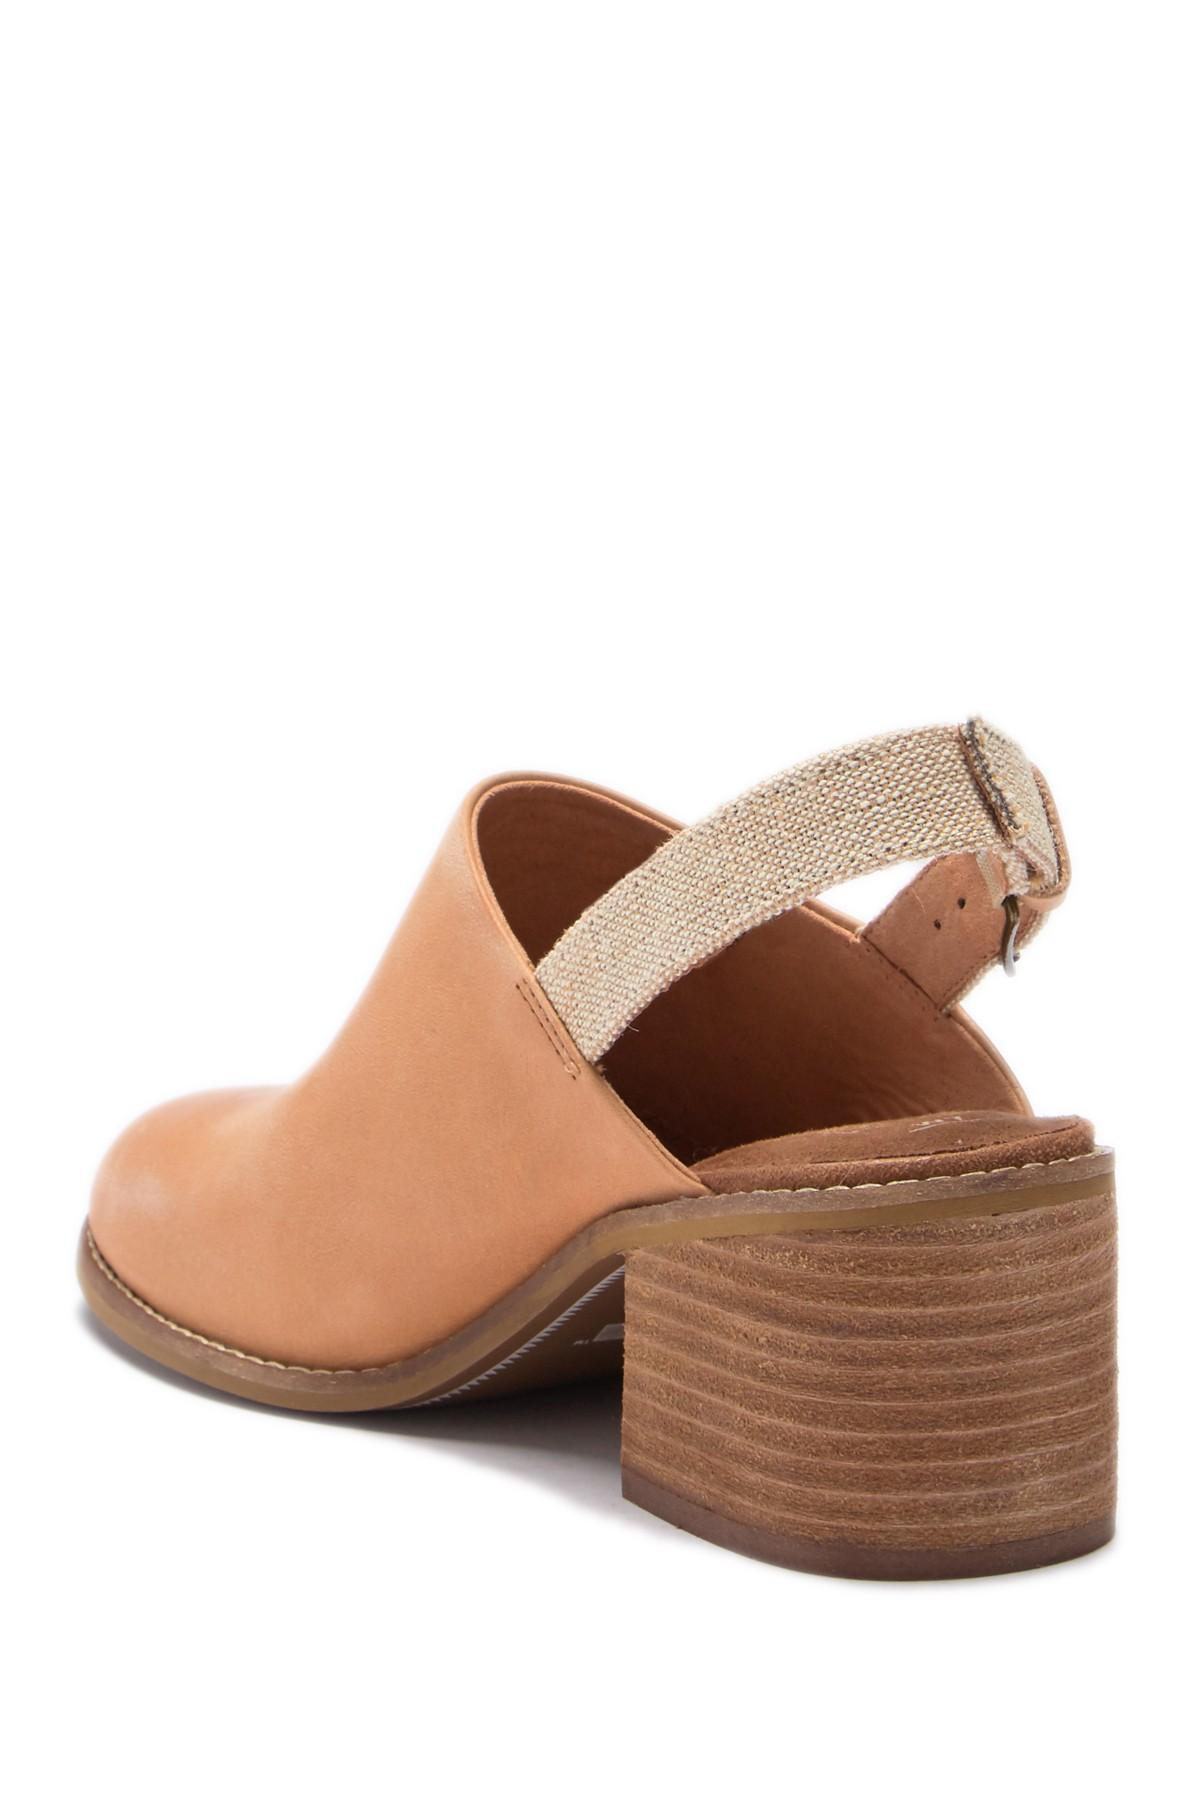 0125749cc8e TOMS - Natural Leila Leather Slingback Block Heel Sandal - Lyst. View  fullscreen